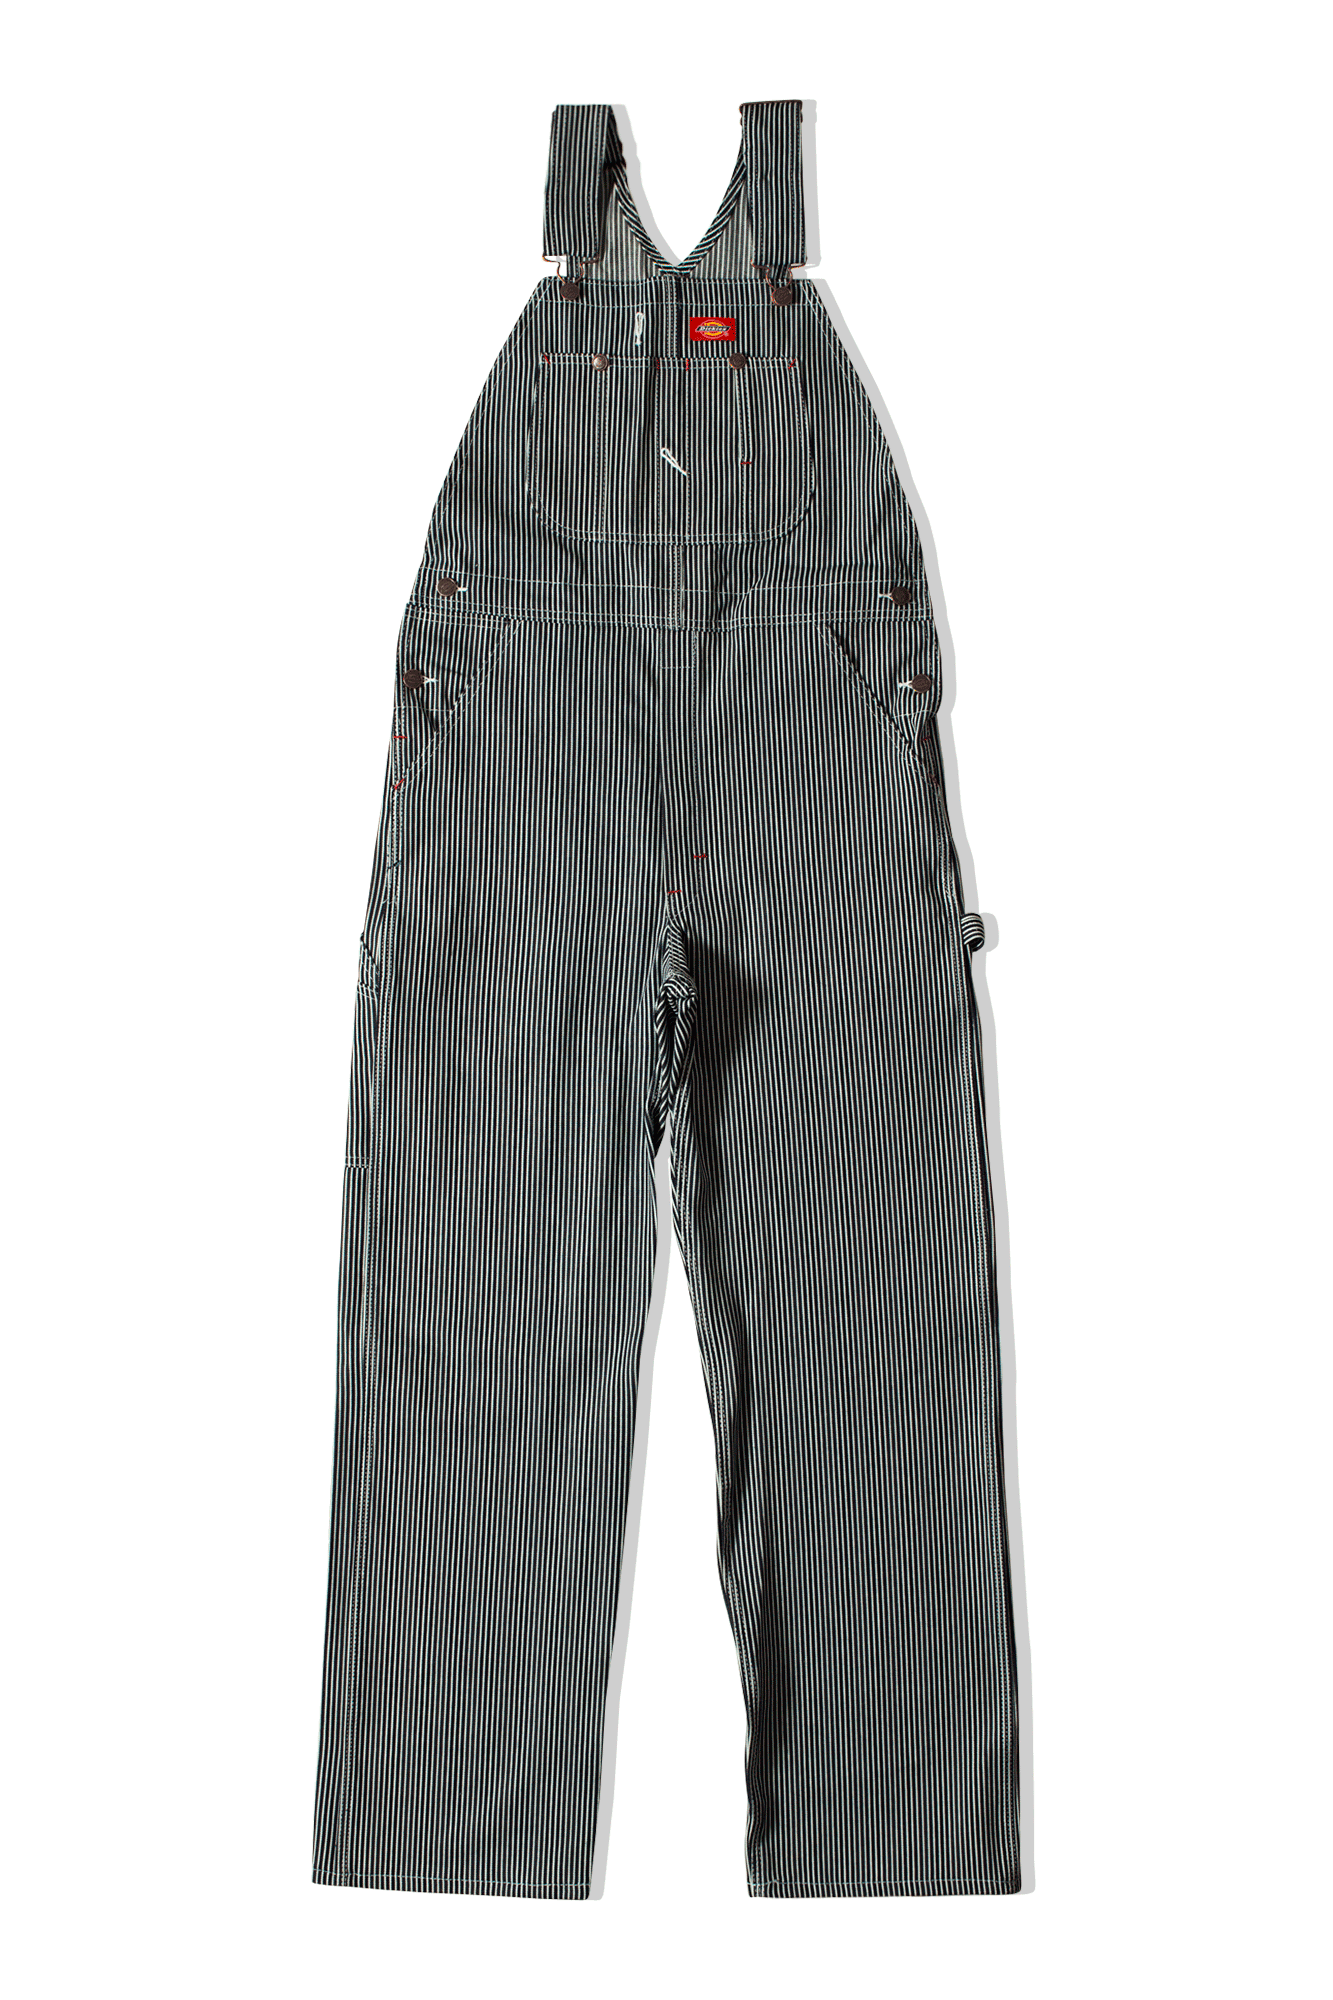 Dickies Salopette Hickory Bib Overall Blu 681190067#000#C0007#27 - One Block Down